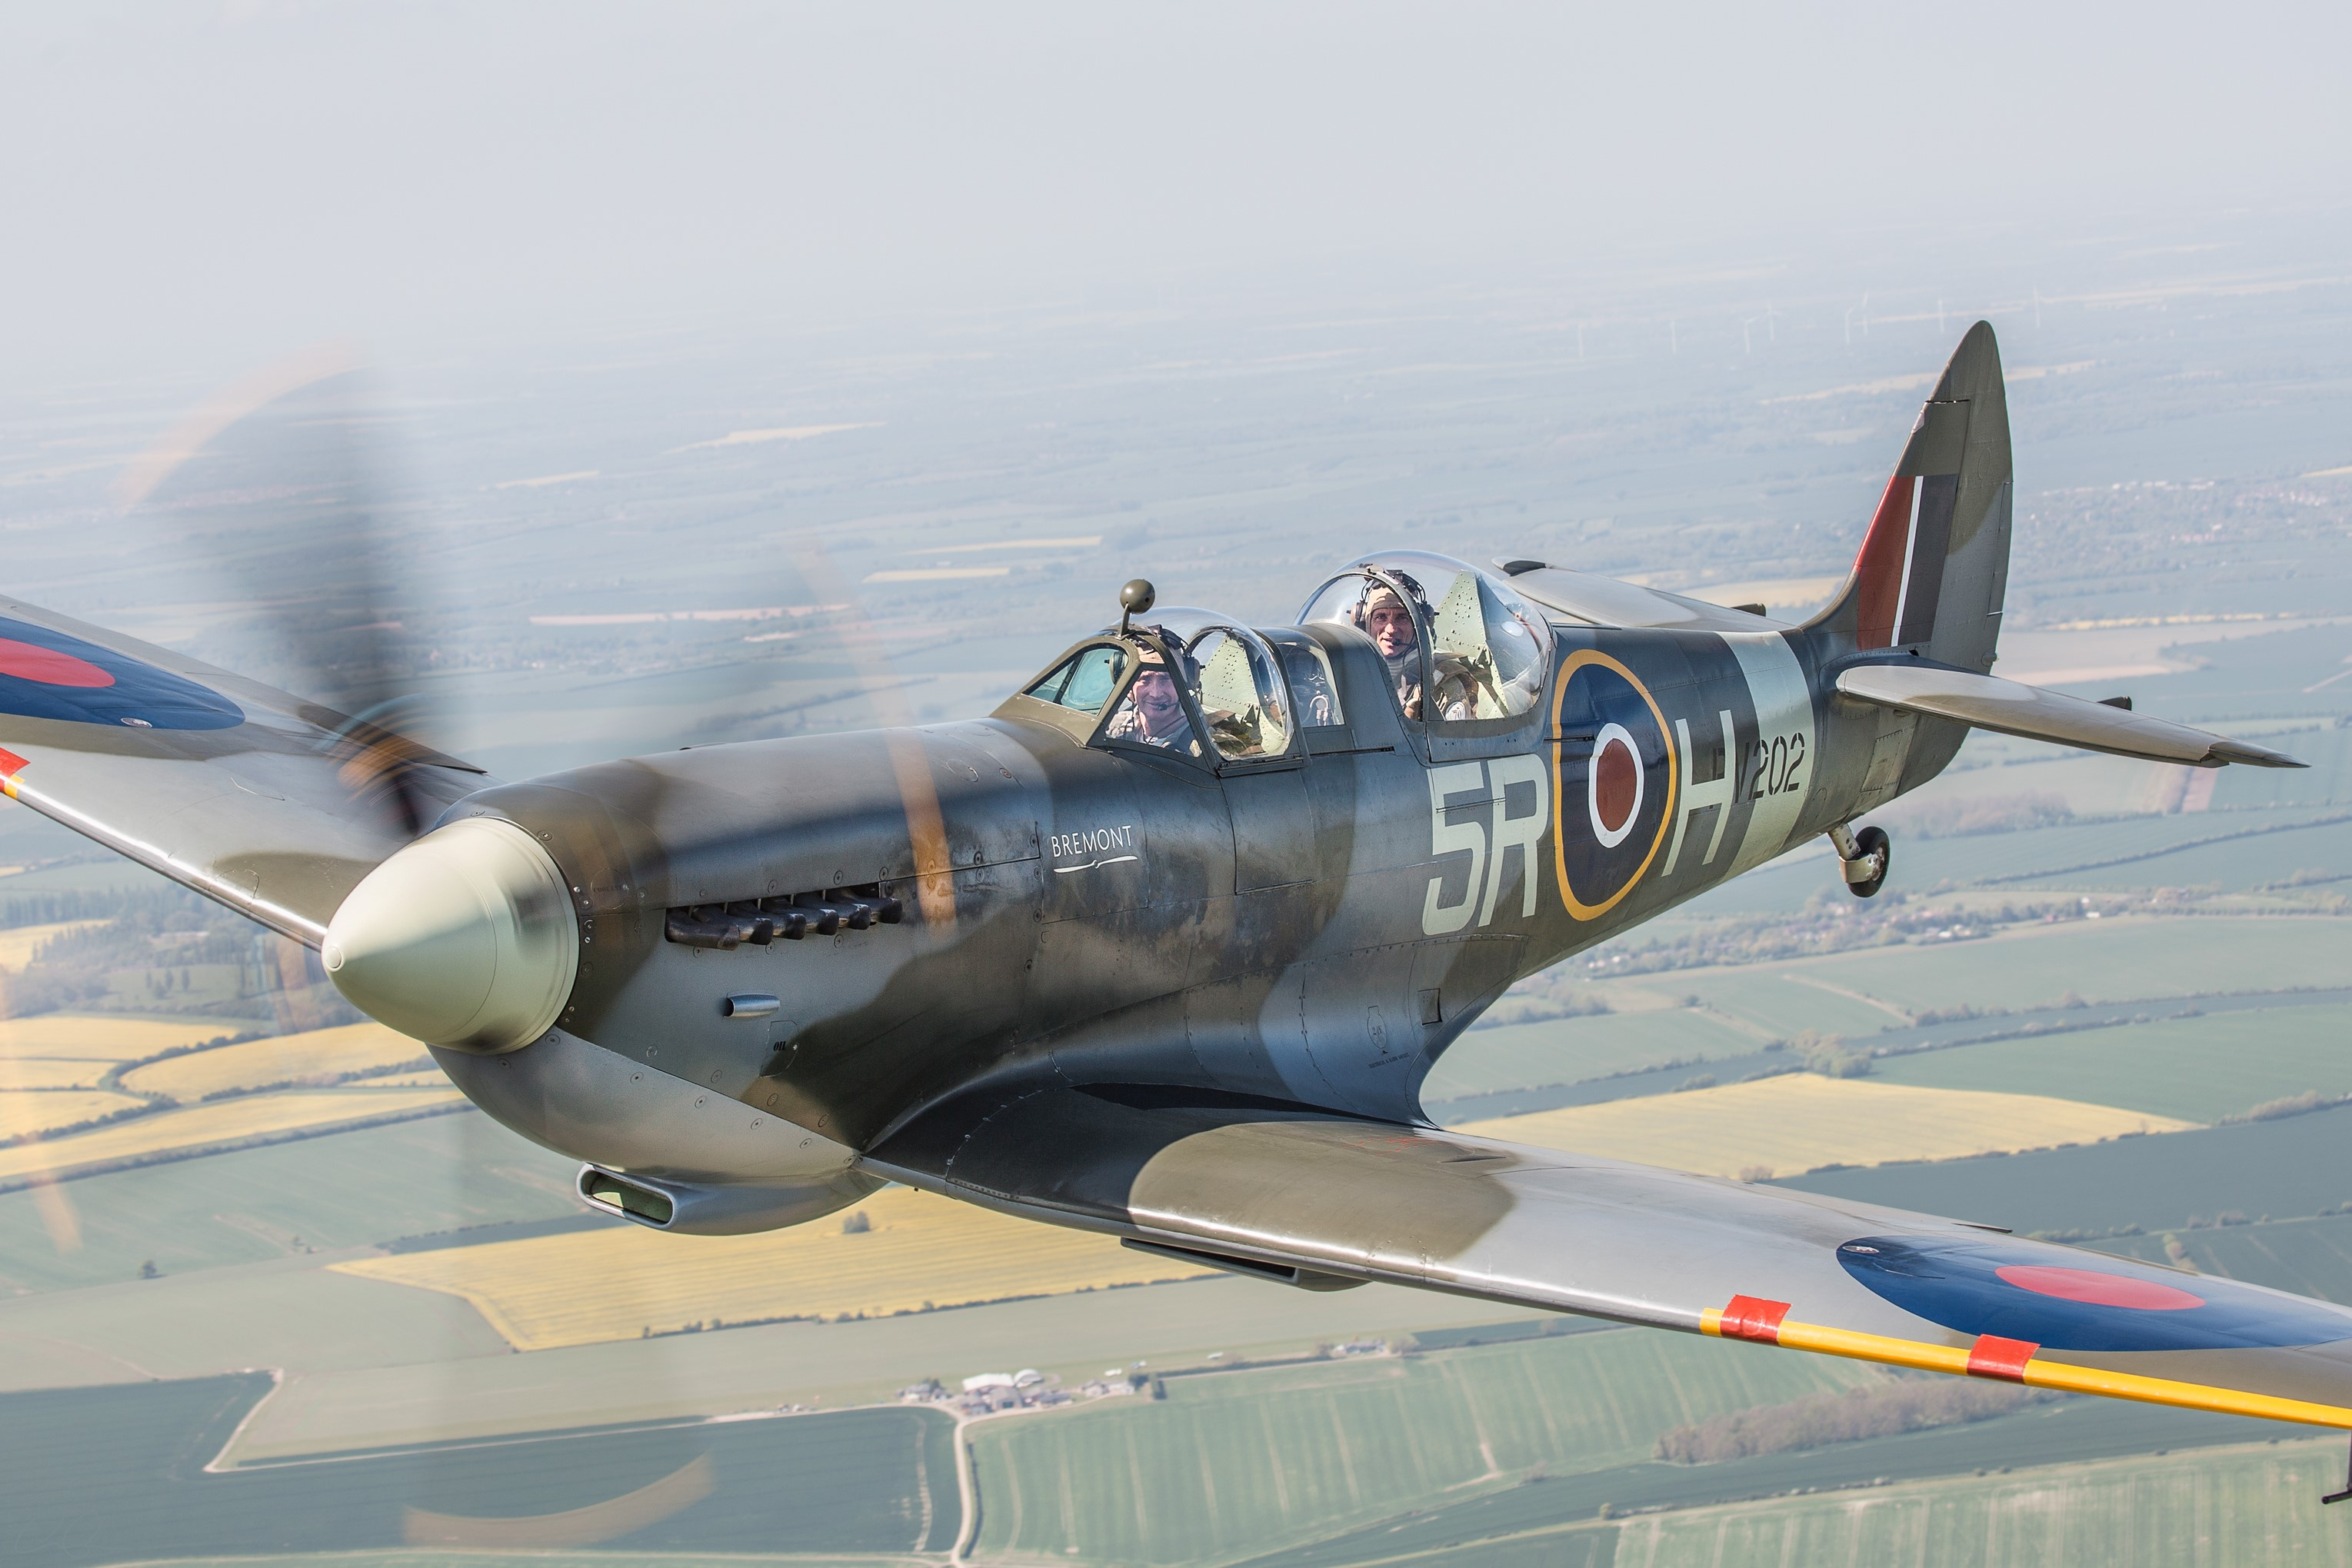 PV202 | Spitfire Flight Experiences from Goodwood Aerodrome, UK